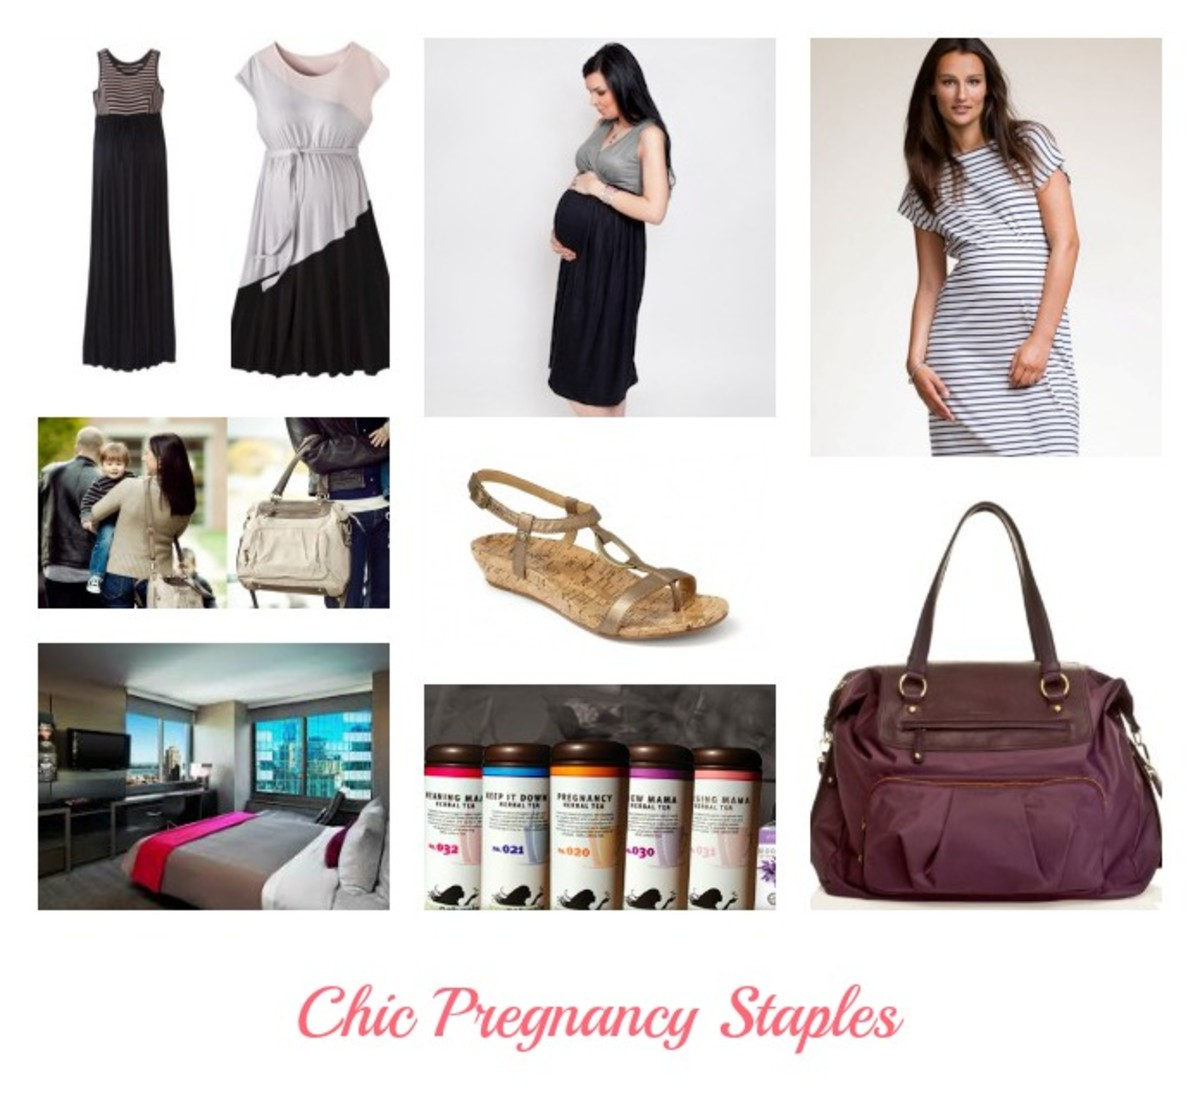 Chic Pregnancy Staples.jpg.jpg